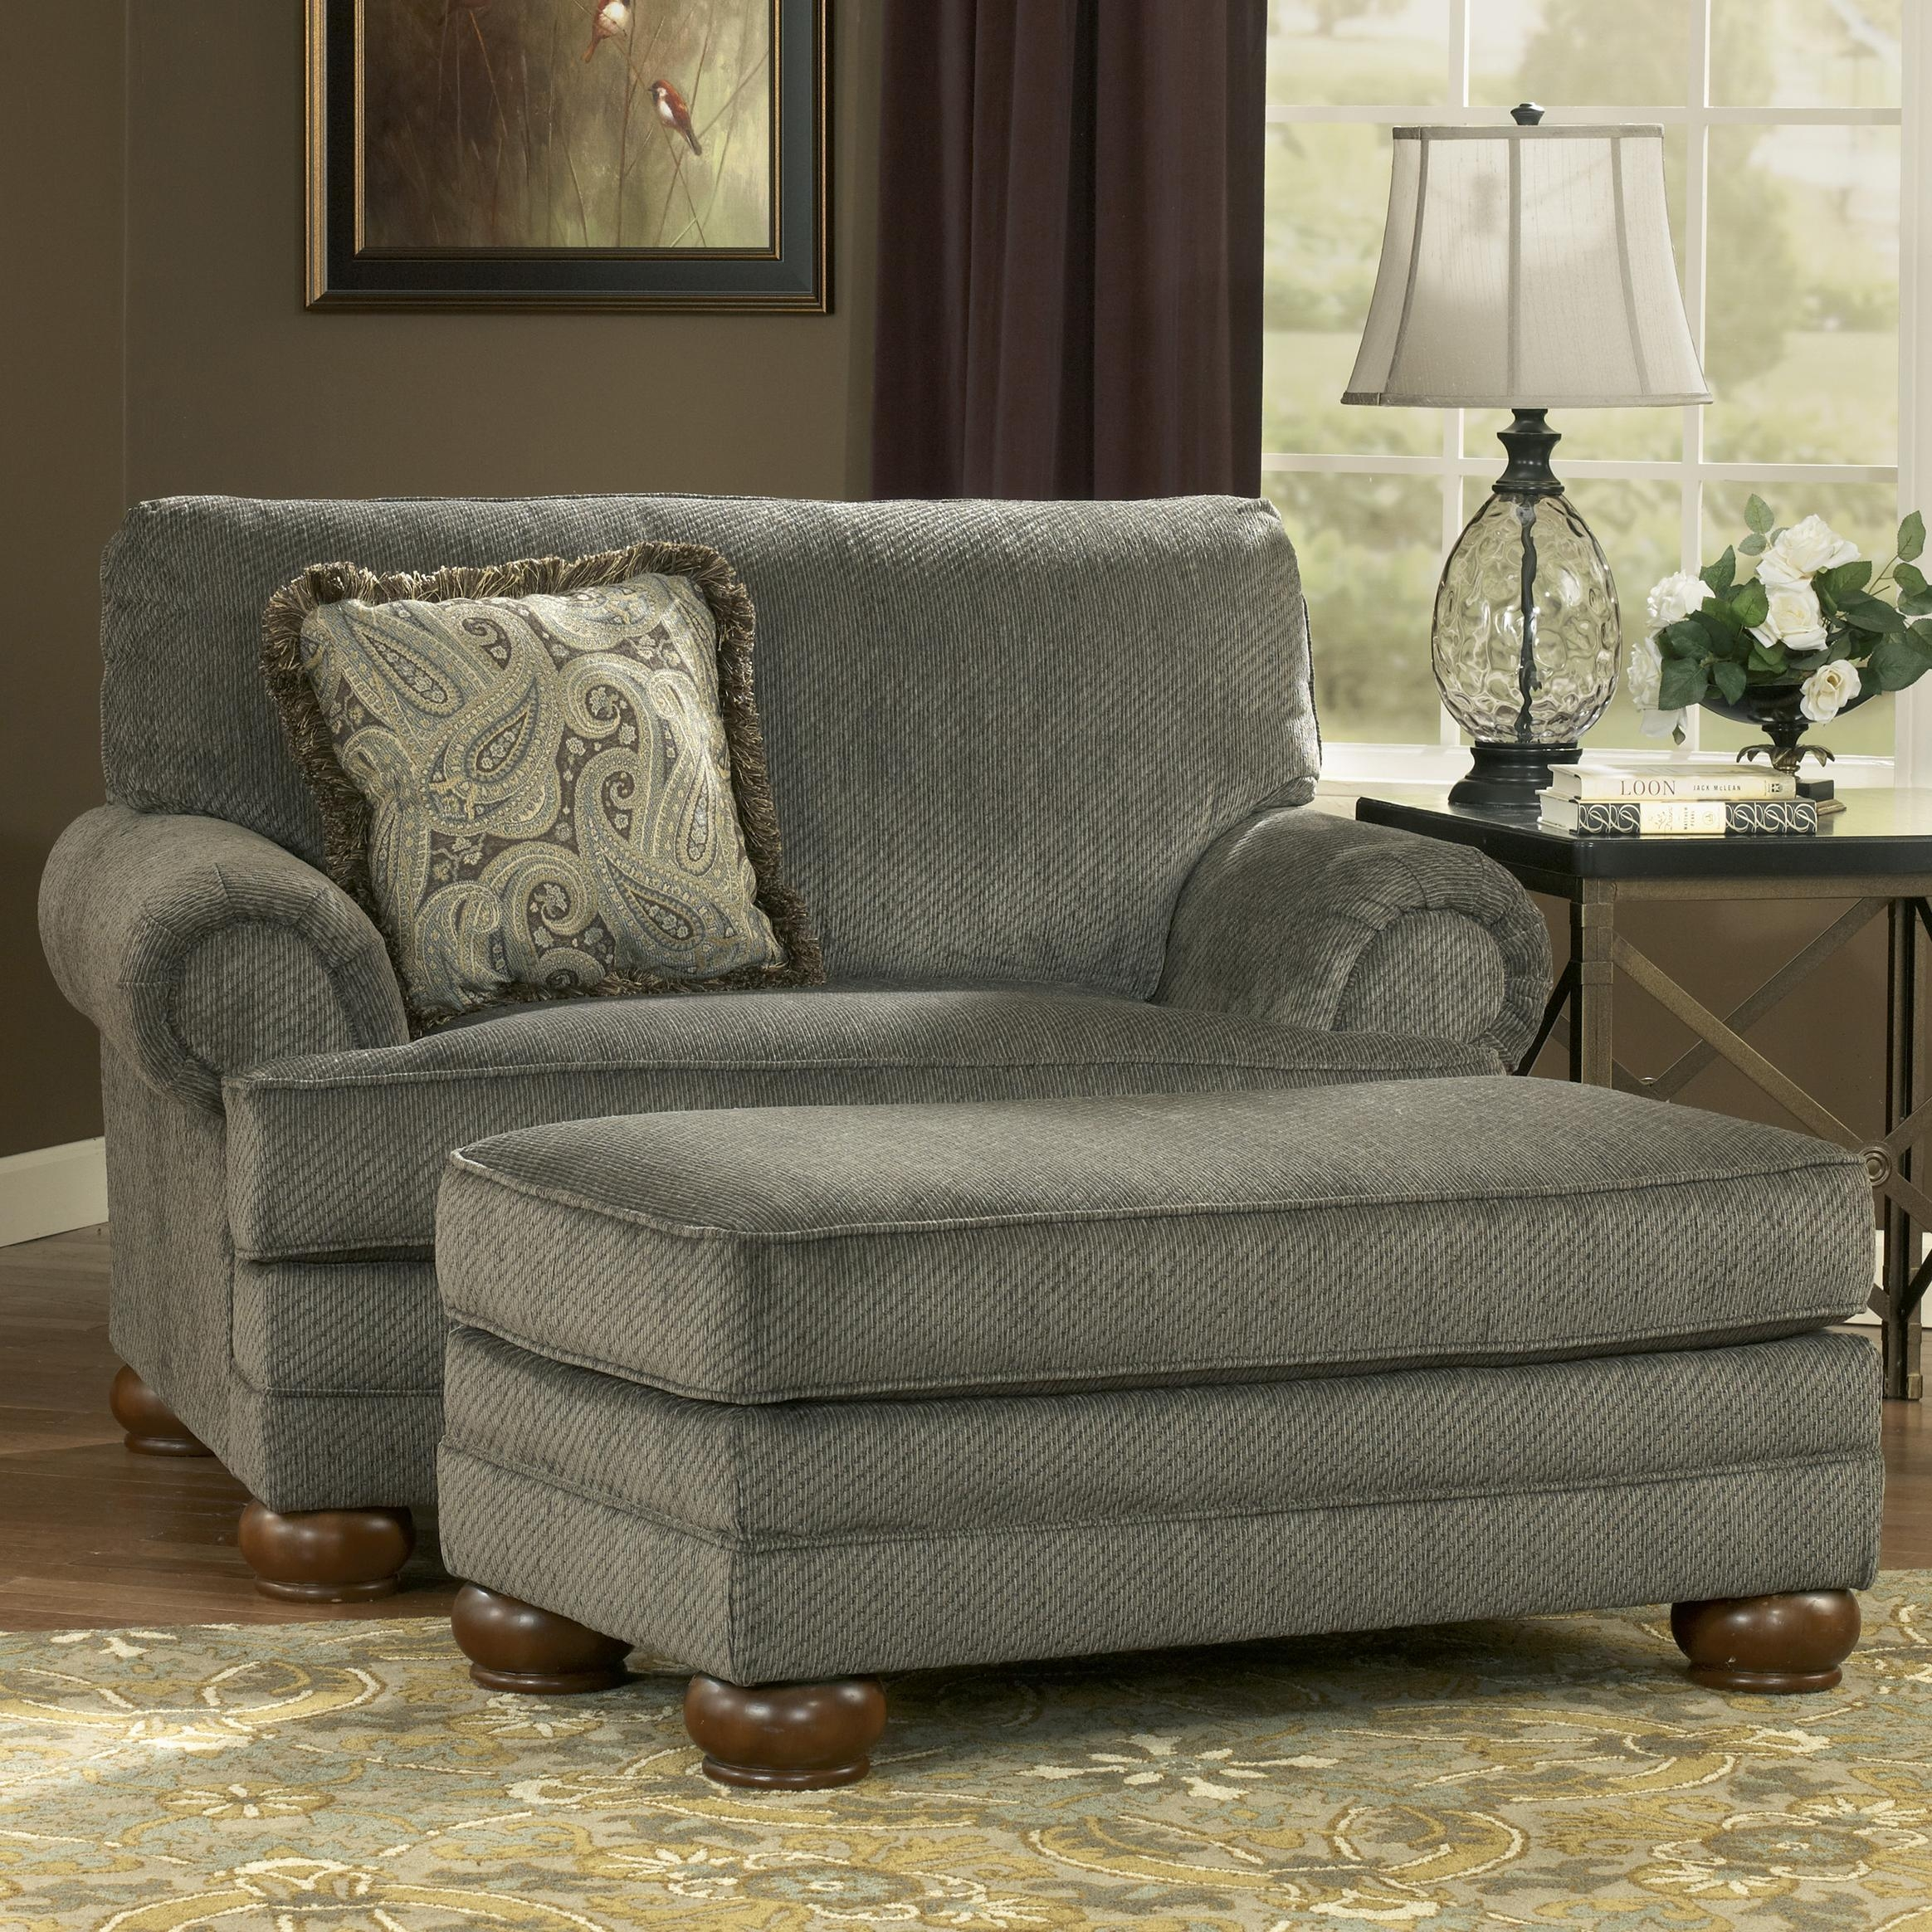 Furniture: Elegant Decorative Cheap Ottoman With Ikea Accent Chair Within Sofa Chair And Ottoman (Image 10 of 20)